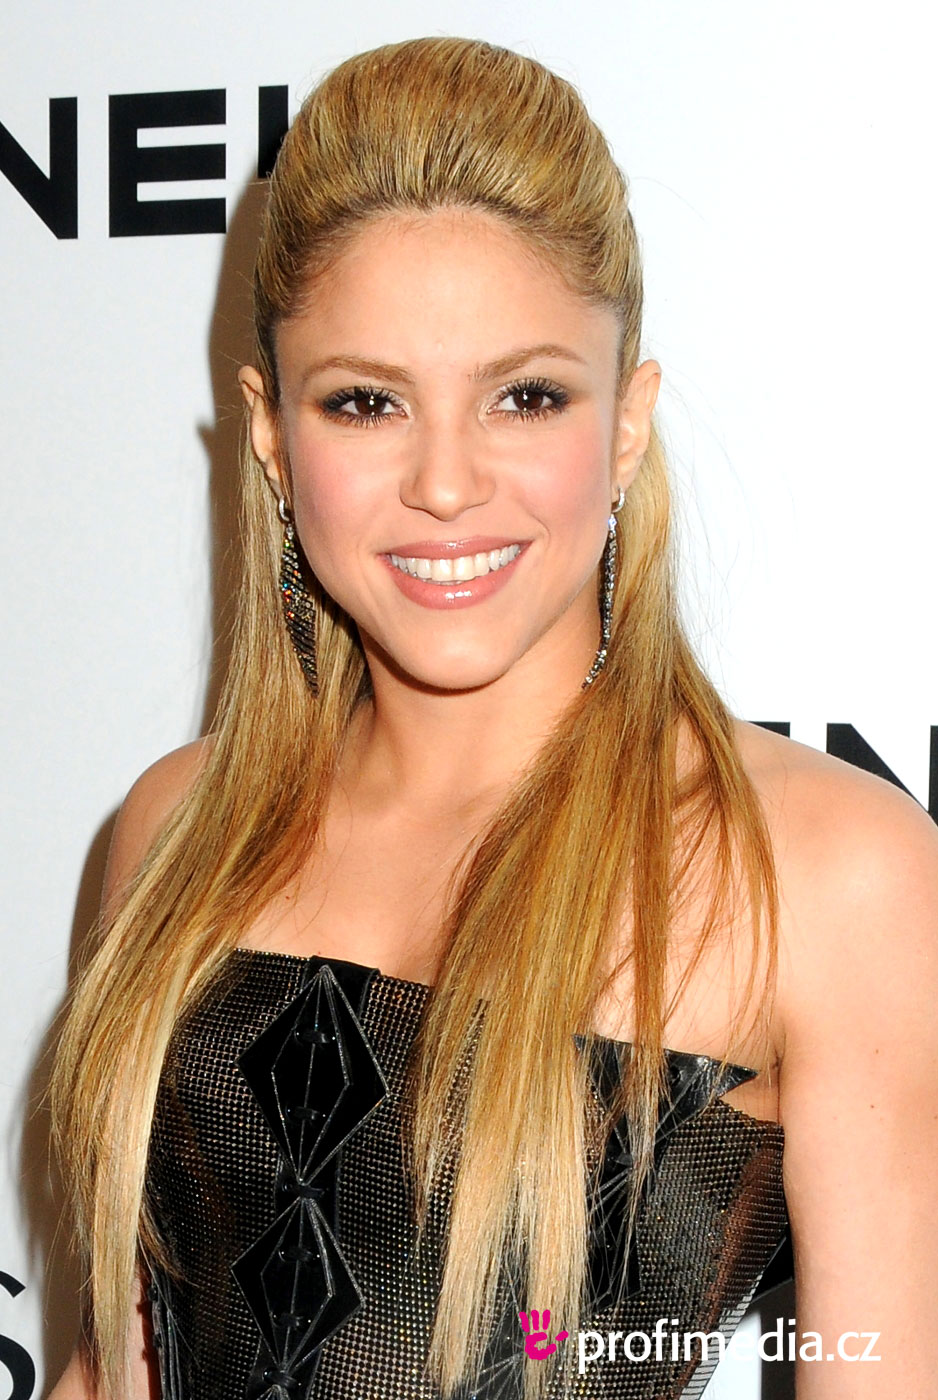 Shakira - Gallery Photo Colection